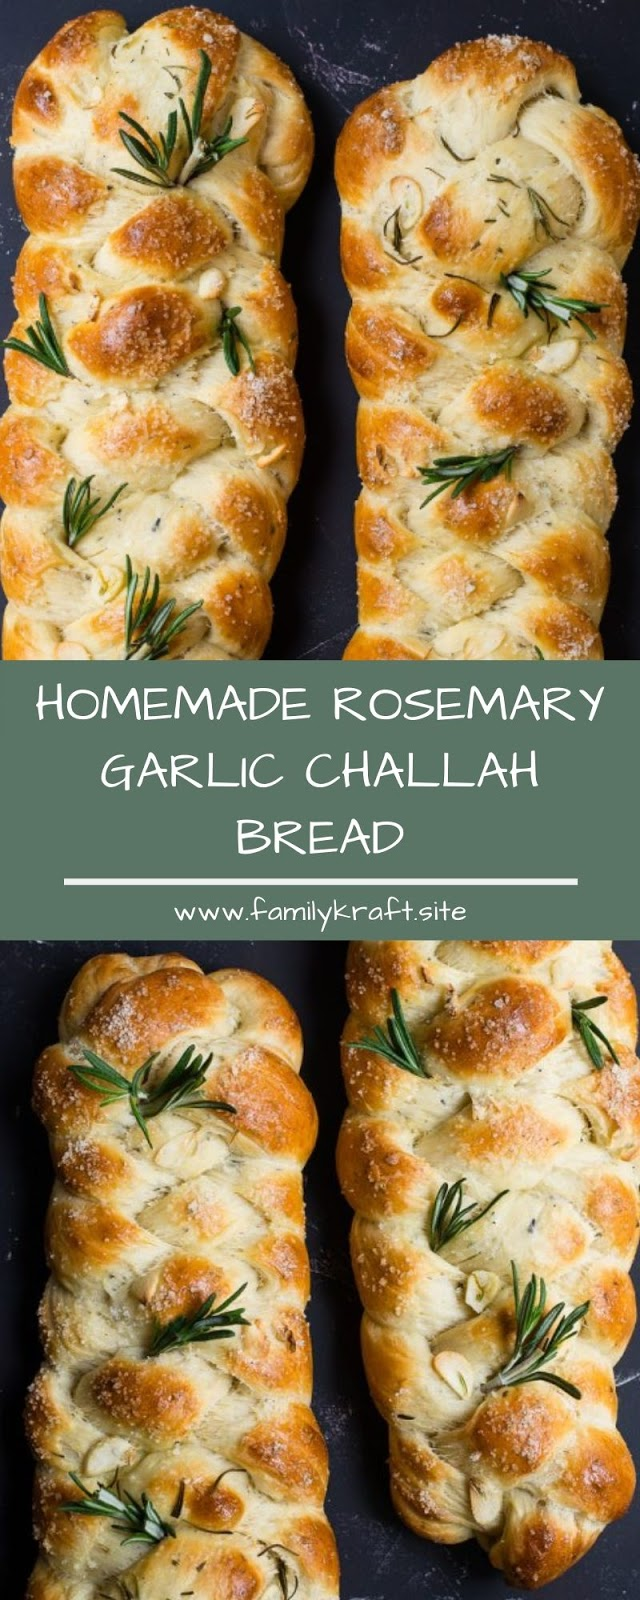 HOMEMADE ROSEMARY GARLIC CHALLAH BREAD